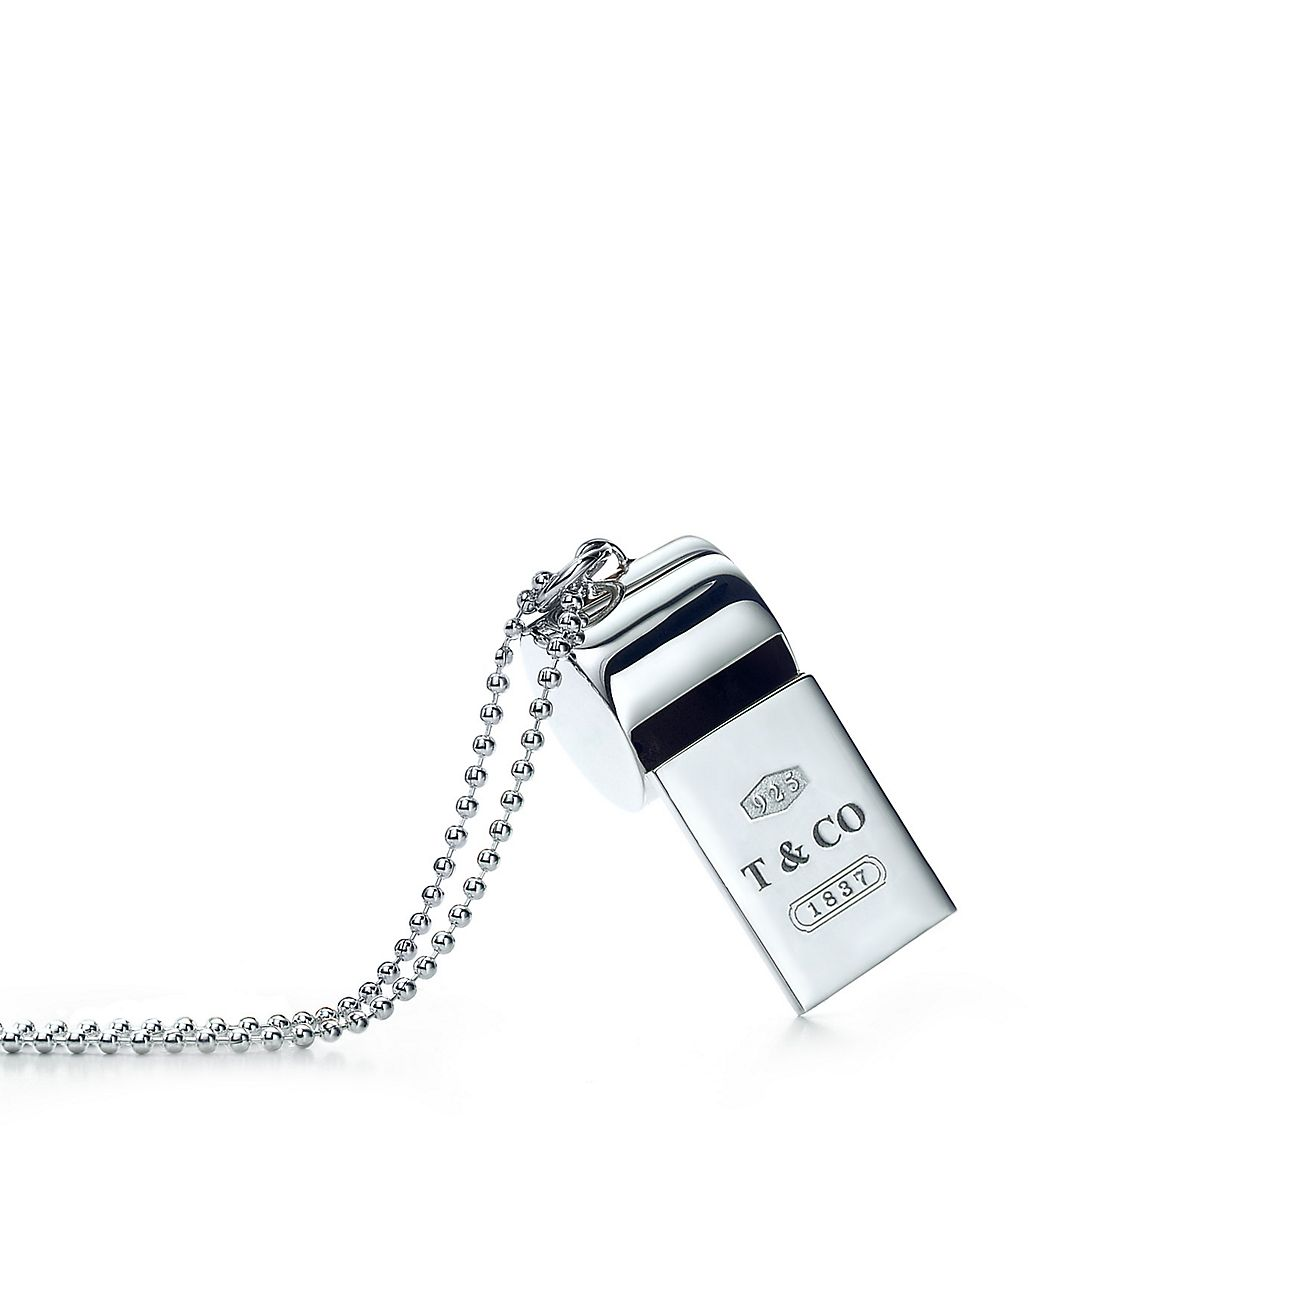 necklace whistle white zestto s pendant product stainless women steel